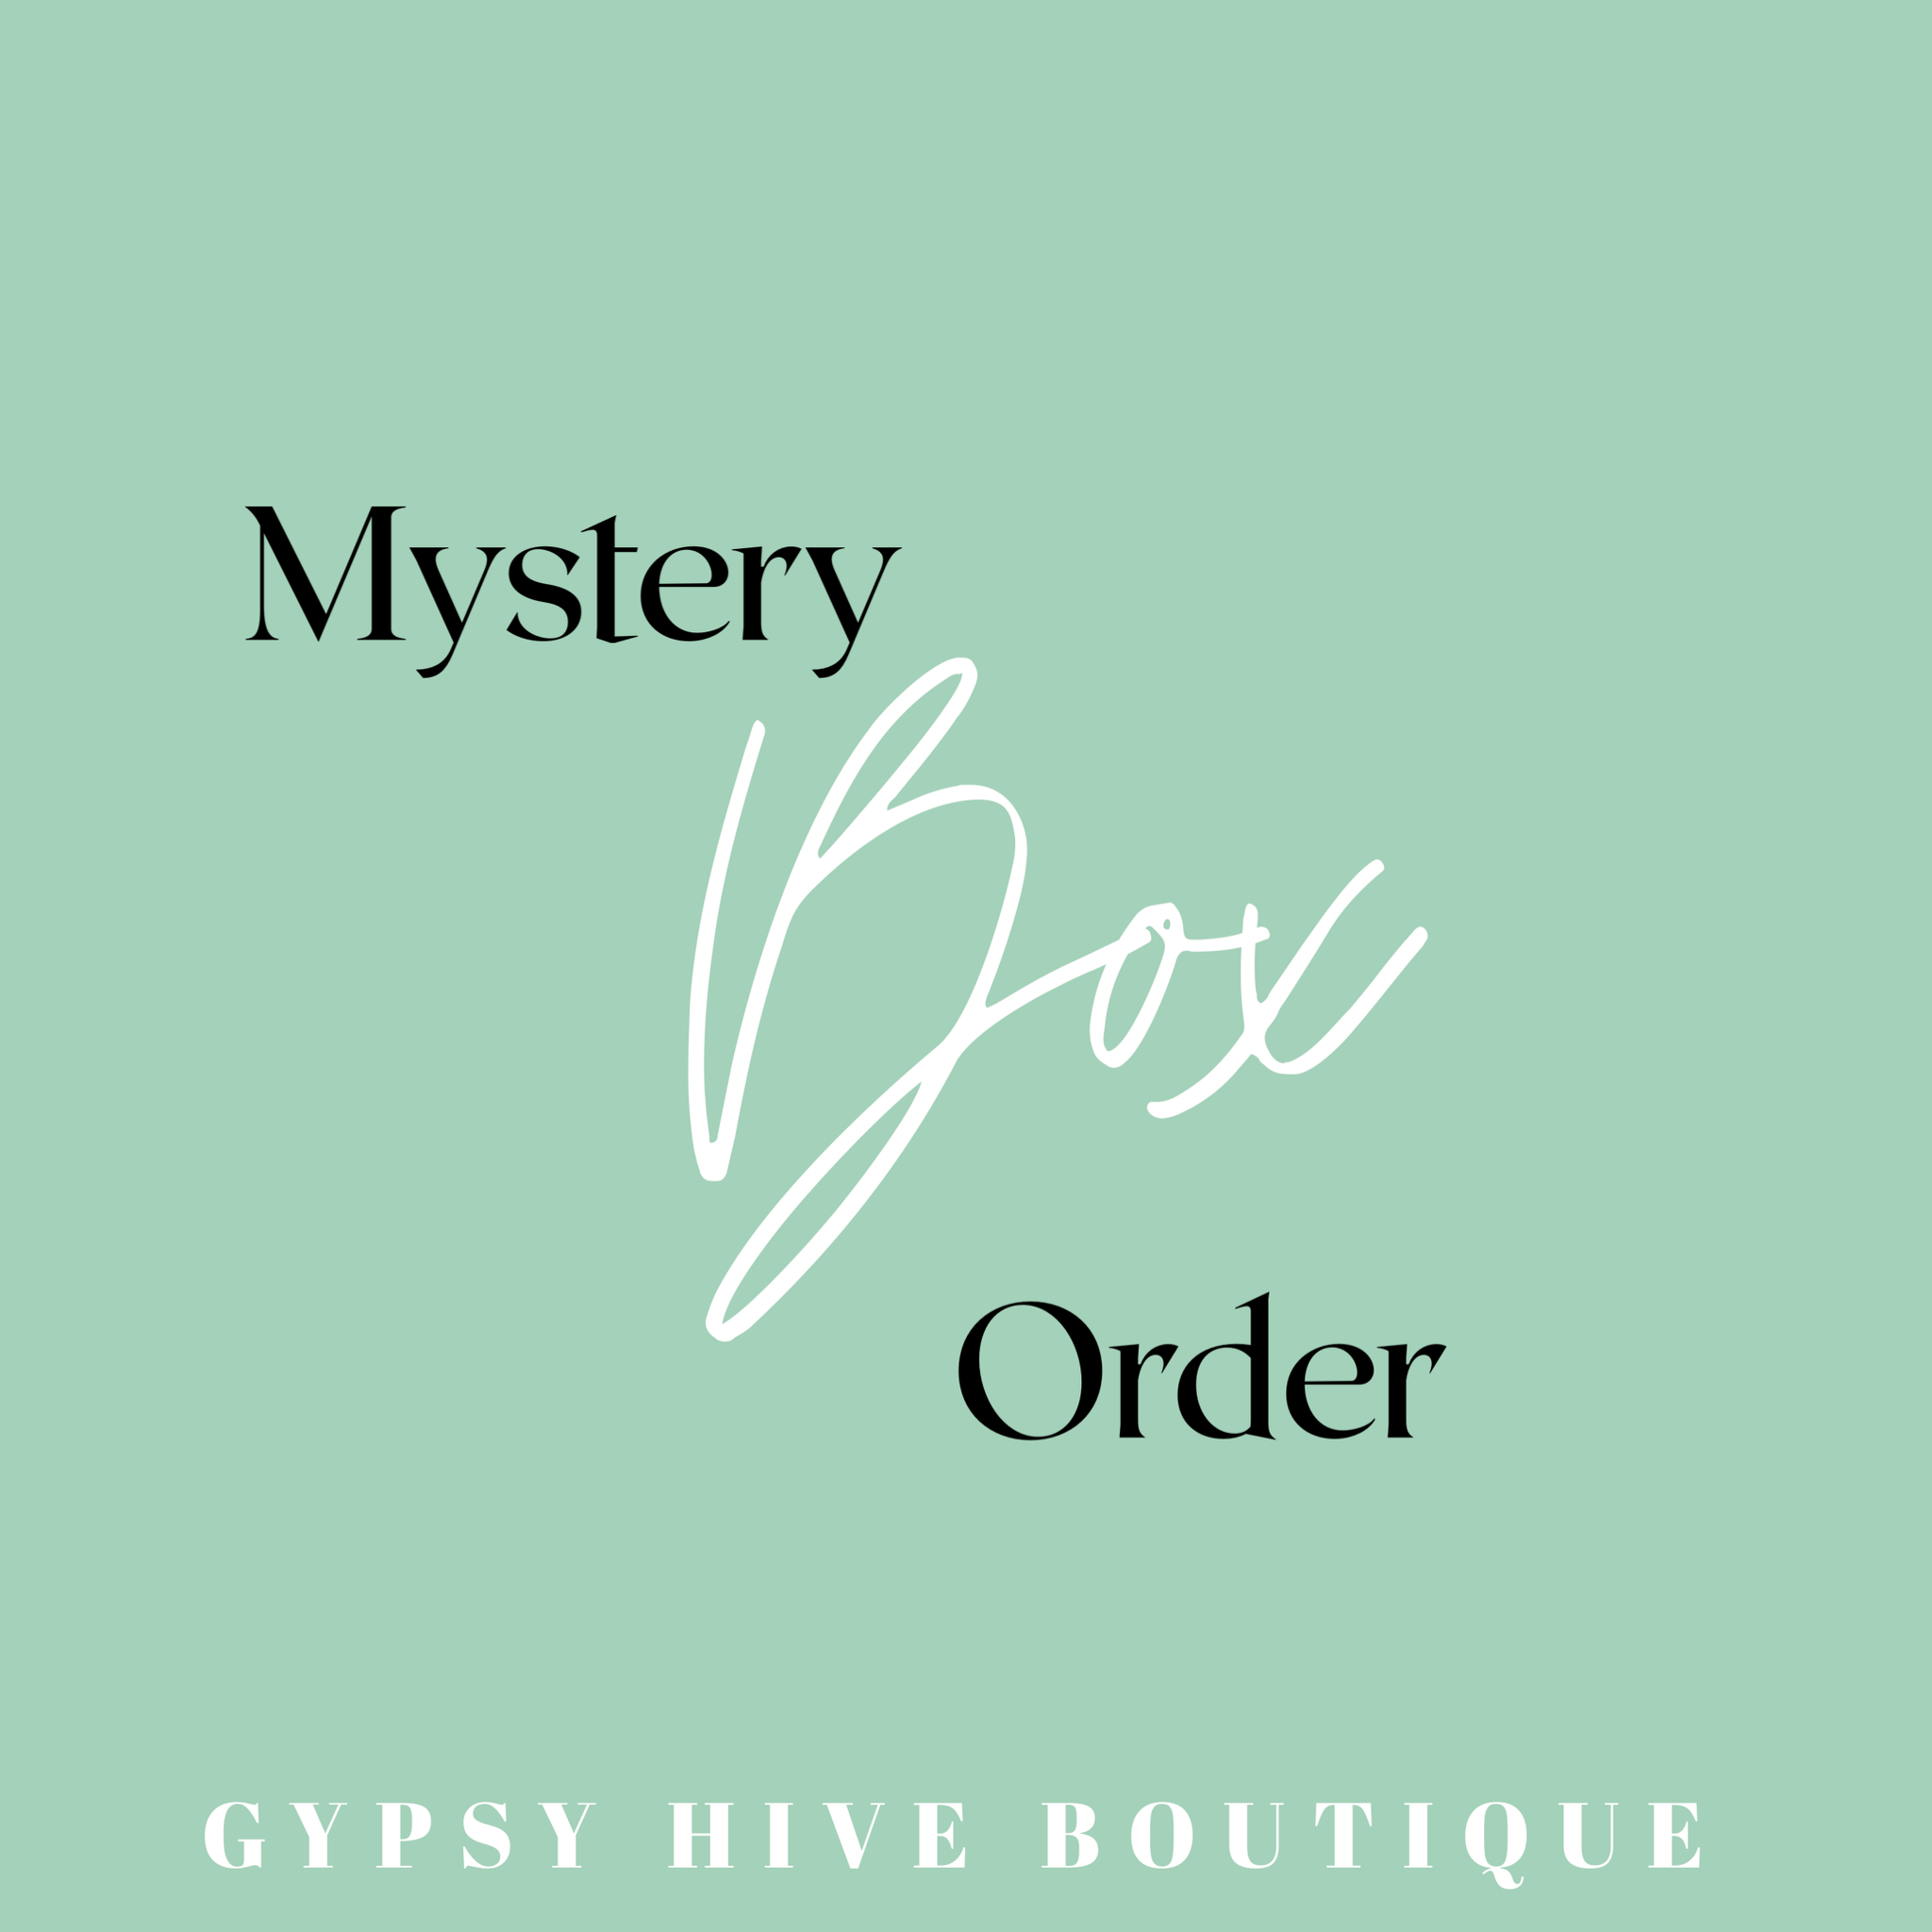 Mystery Box Order